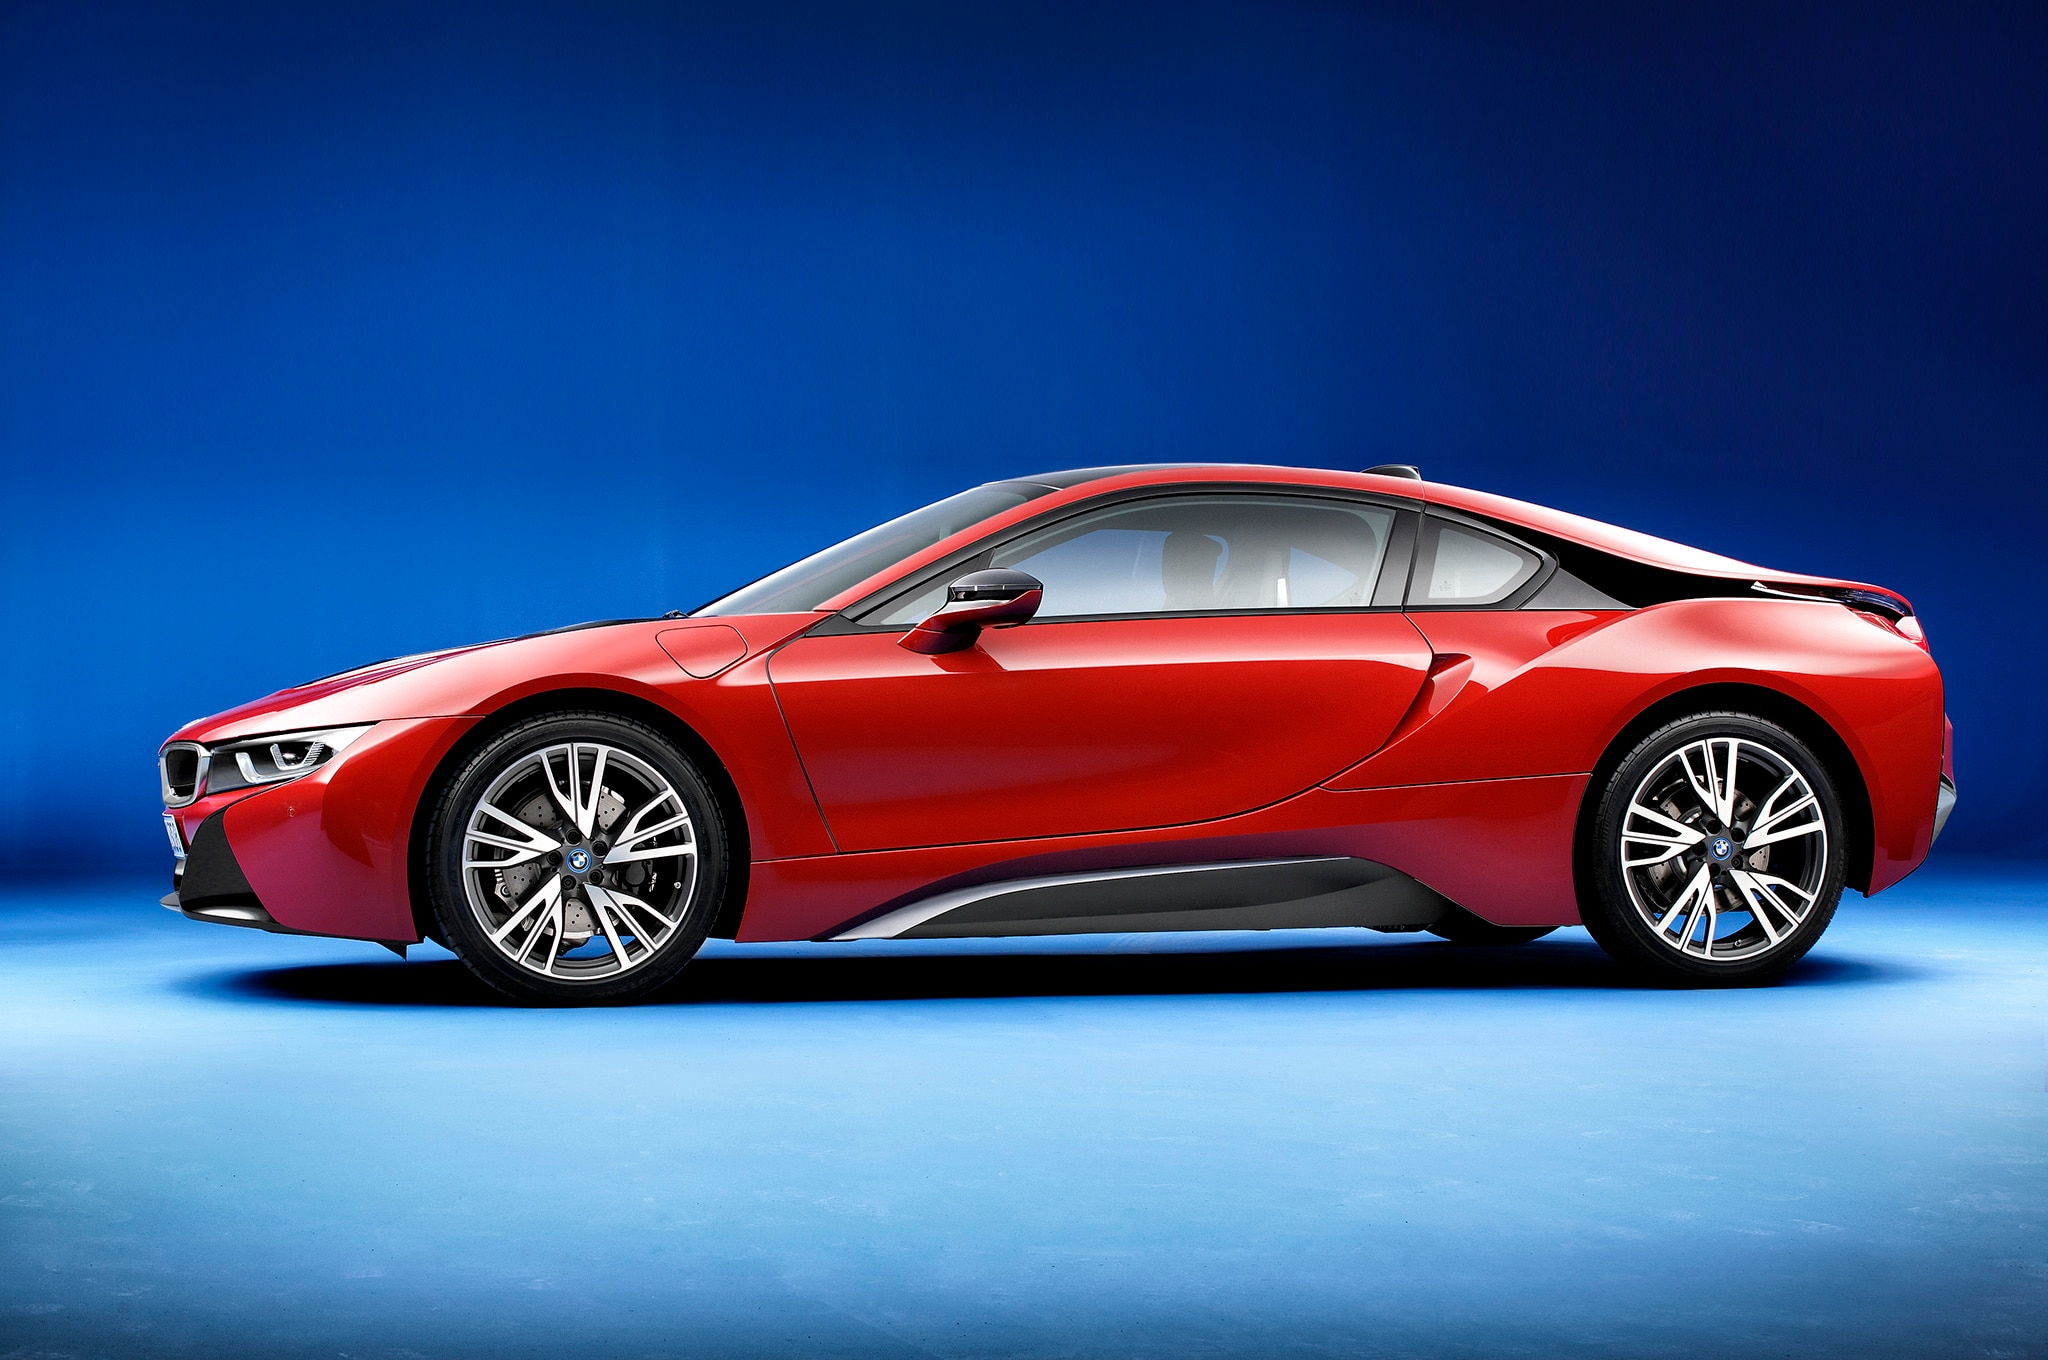 Other Upgrades In The Works For BMW I8